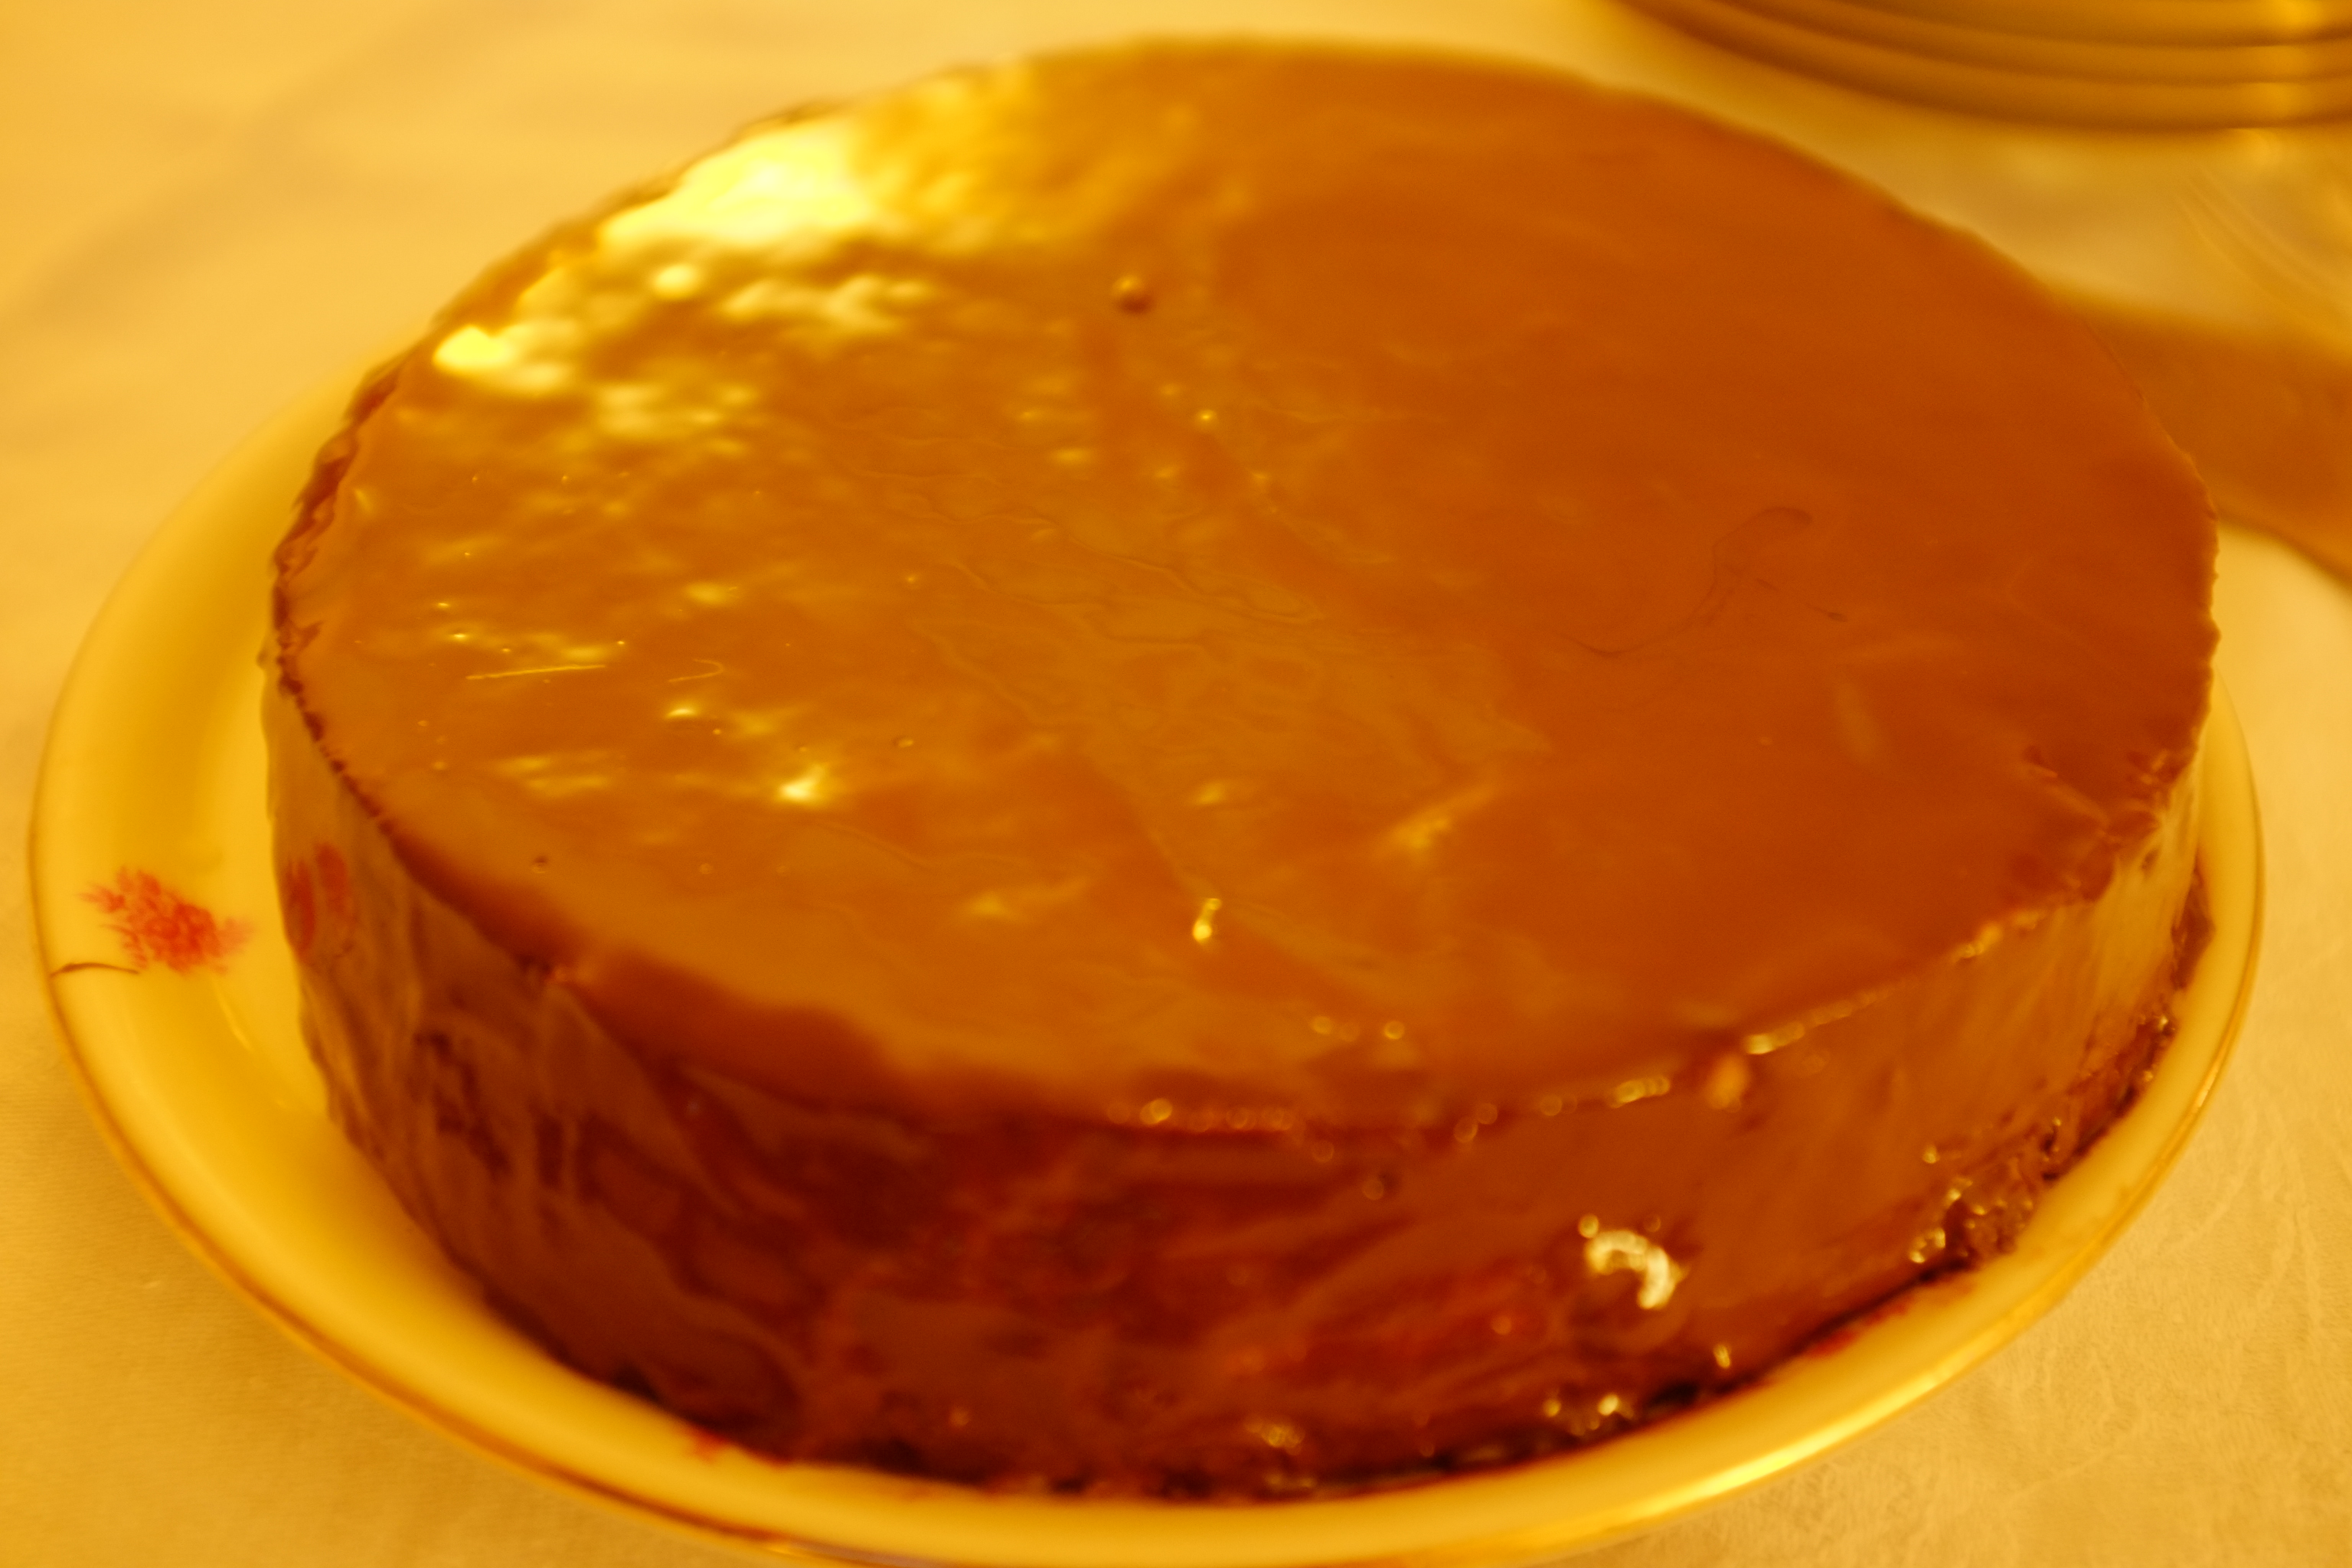 Gateau creme au marron